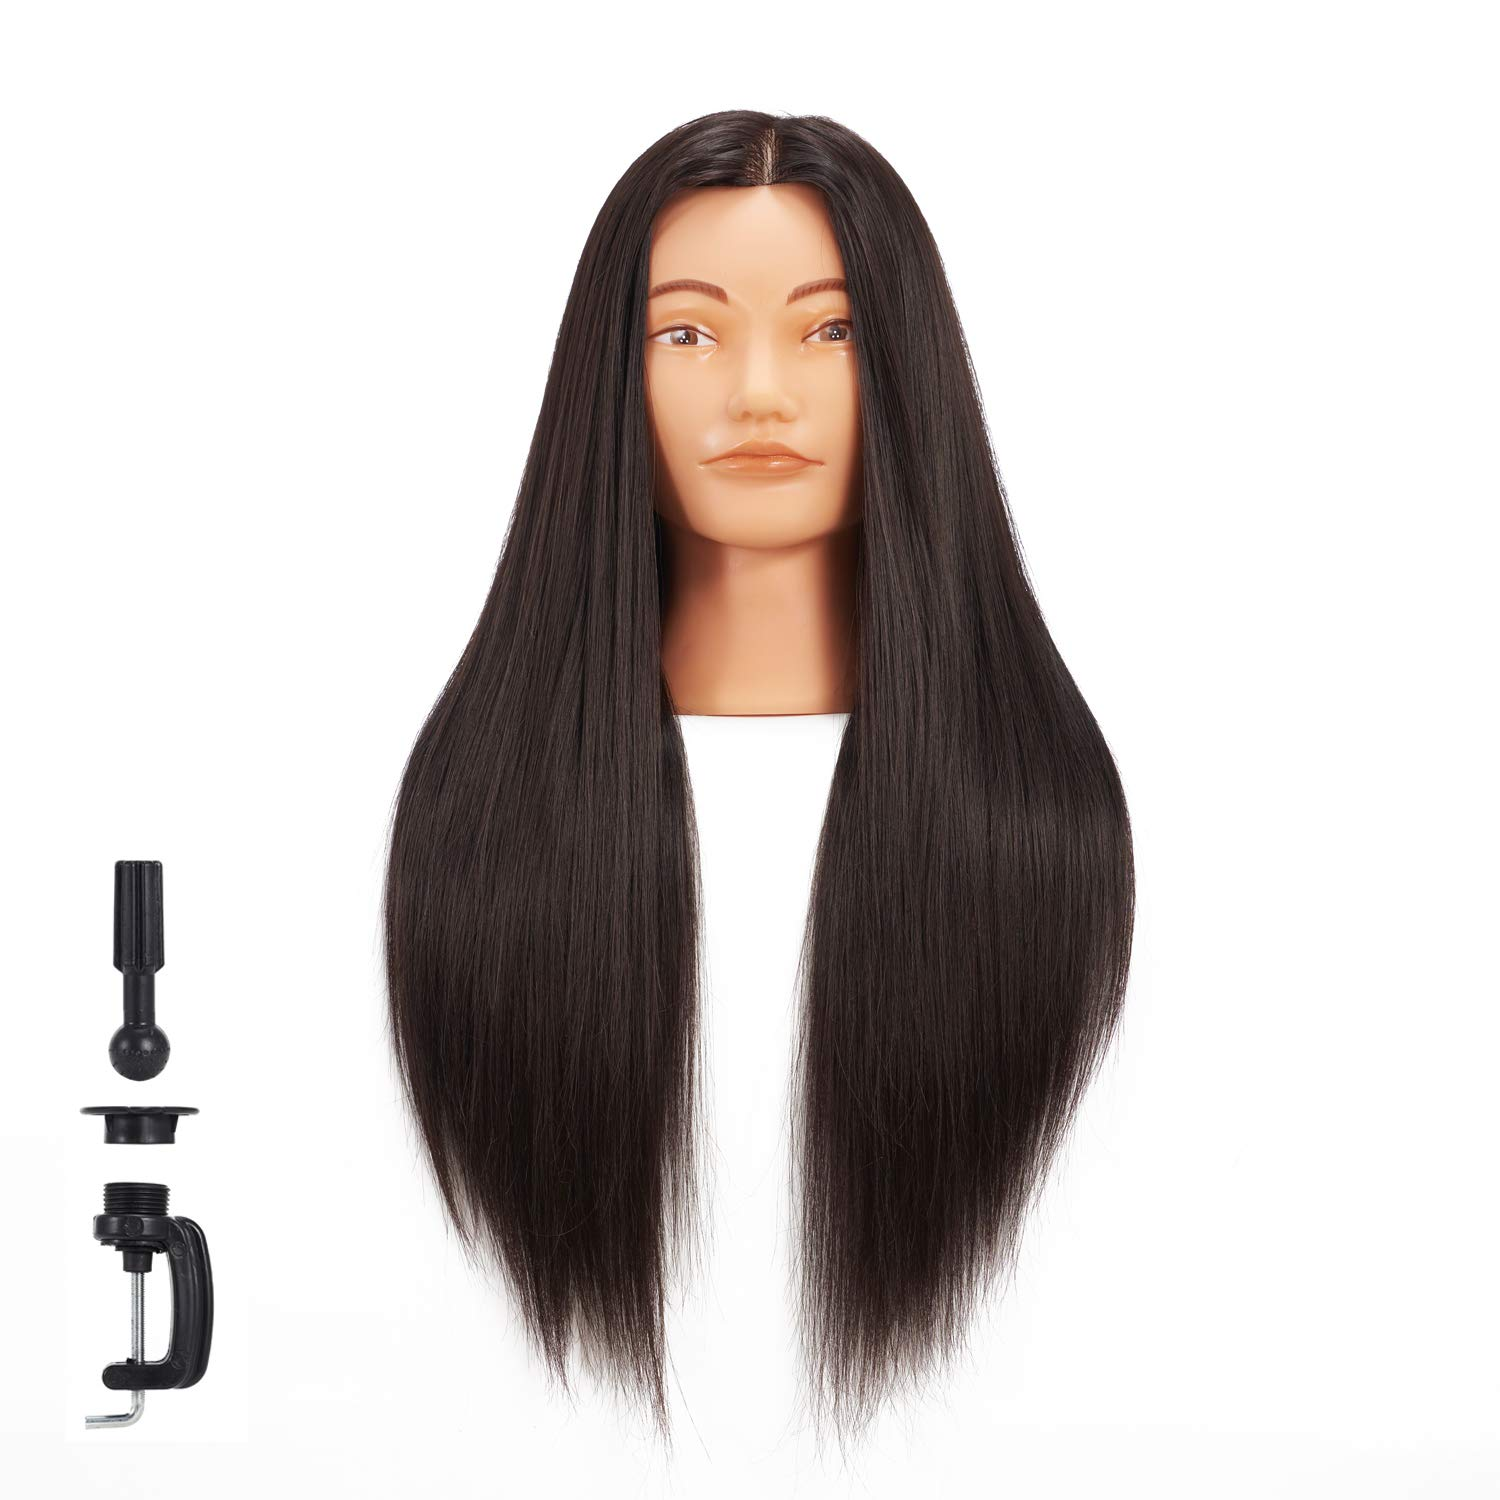 Hairginkgo Mannequin Head 26''-28'' Super Long Synthetic Fiber Hair Manikin Head Styling Hairdresser Training Head Cosmetology Doll Head for Cutting Braiding Practice with Clamp (92019D0220) by HAIRGINKGO